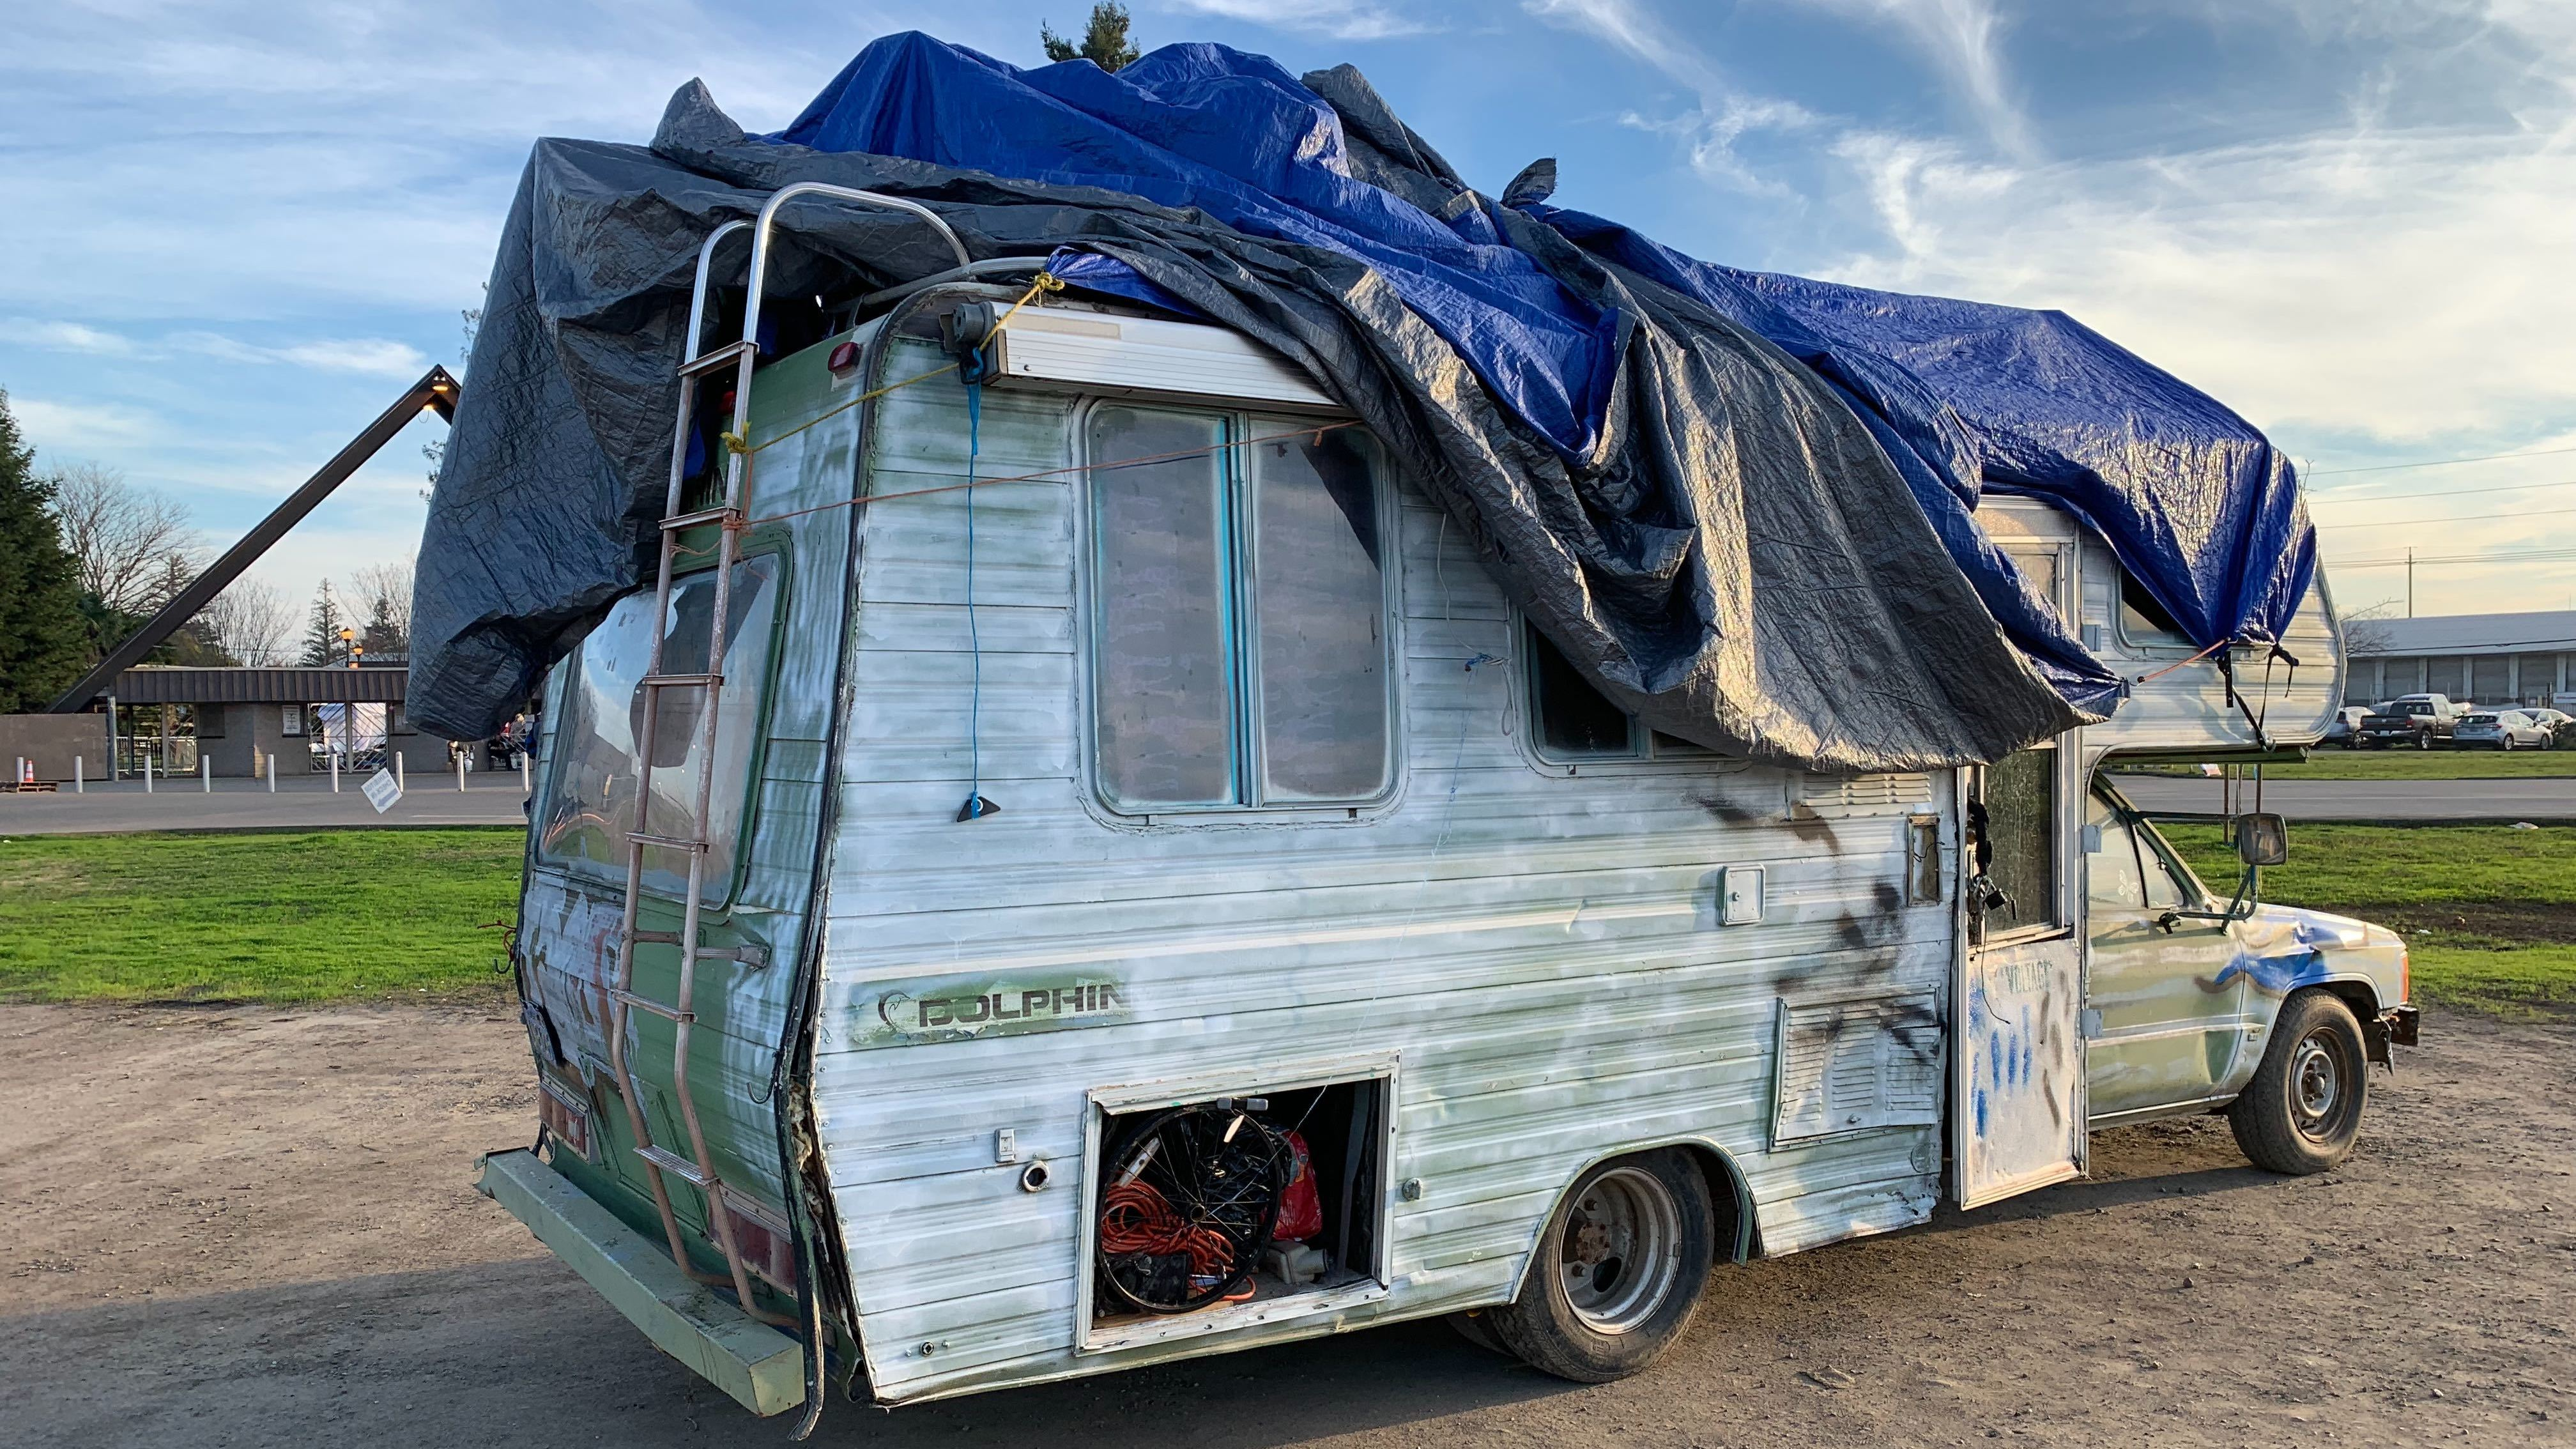 An abandoned RV at the last remaining Red Cross shelter providing housing for victims of the Camp Fire in California.